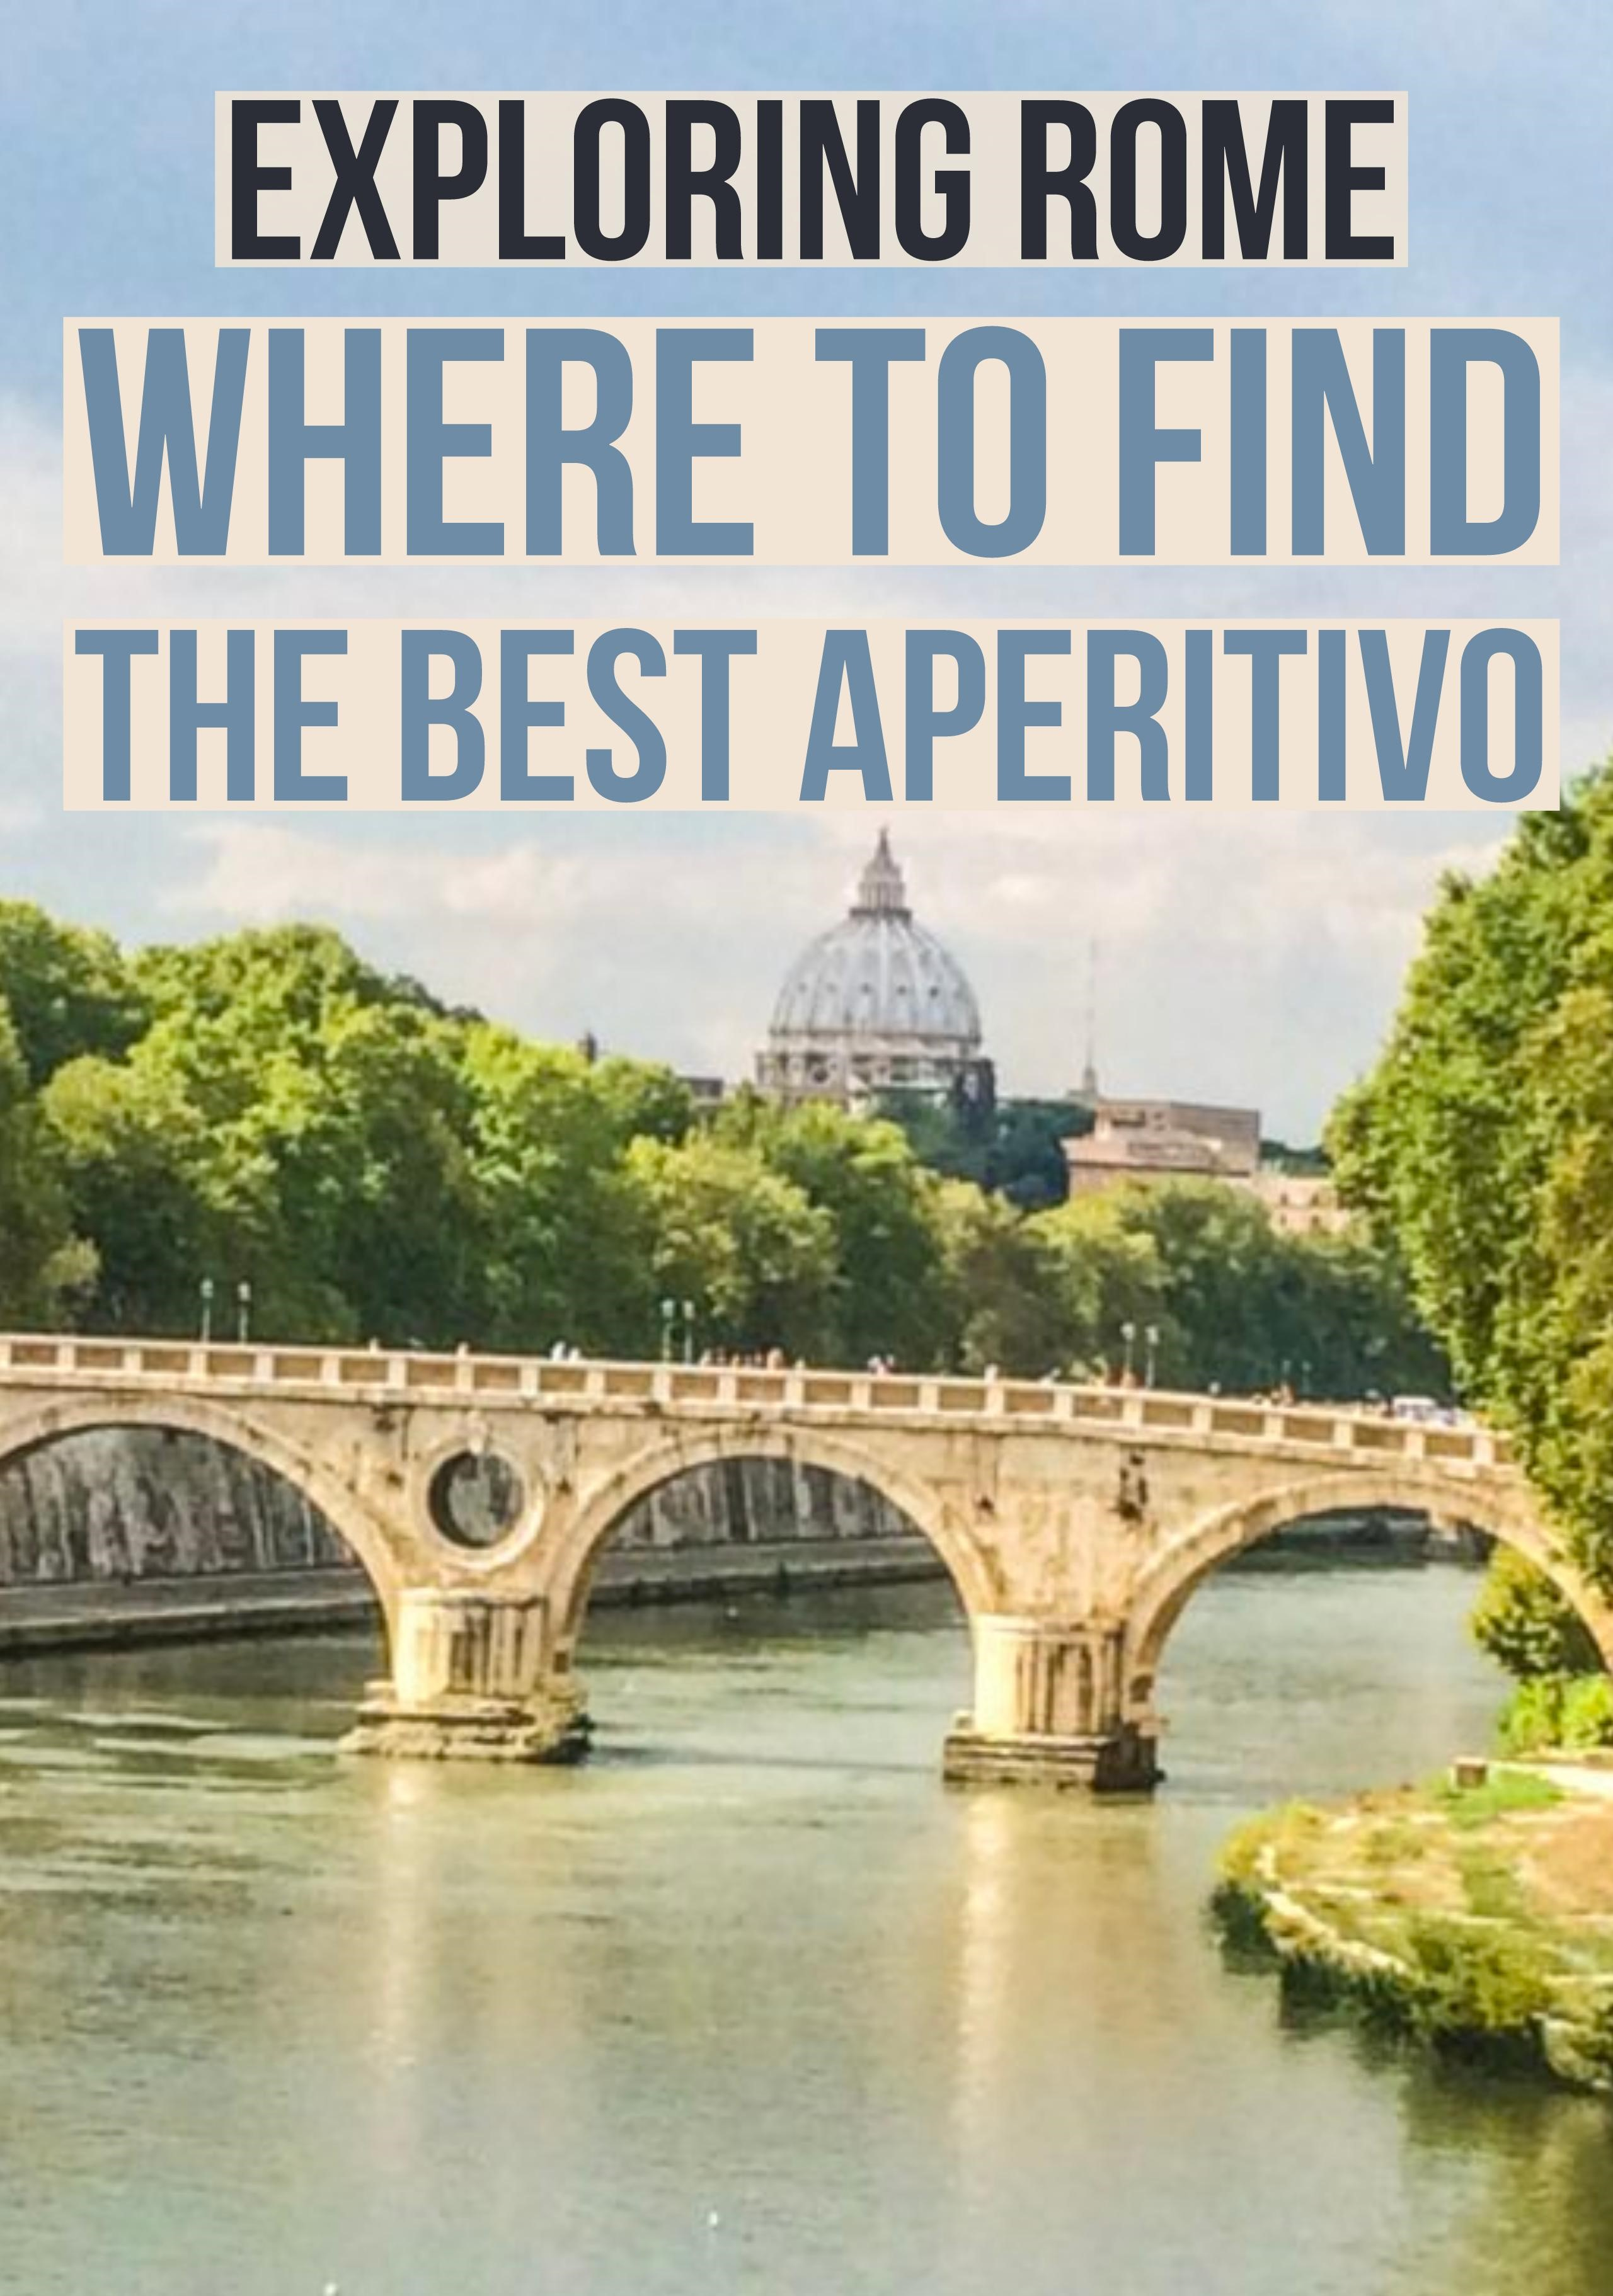 Where to find the best aperitivo in Rome